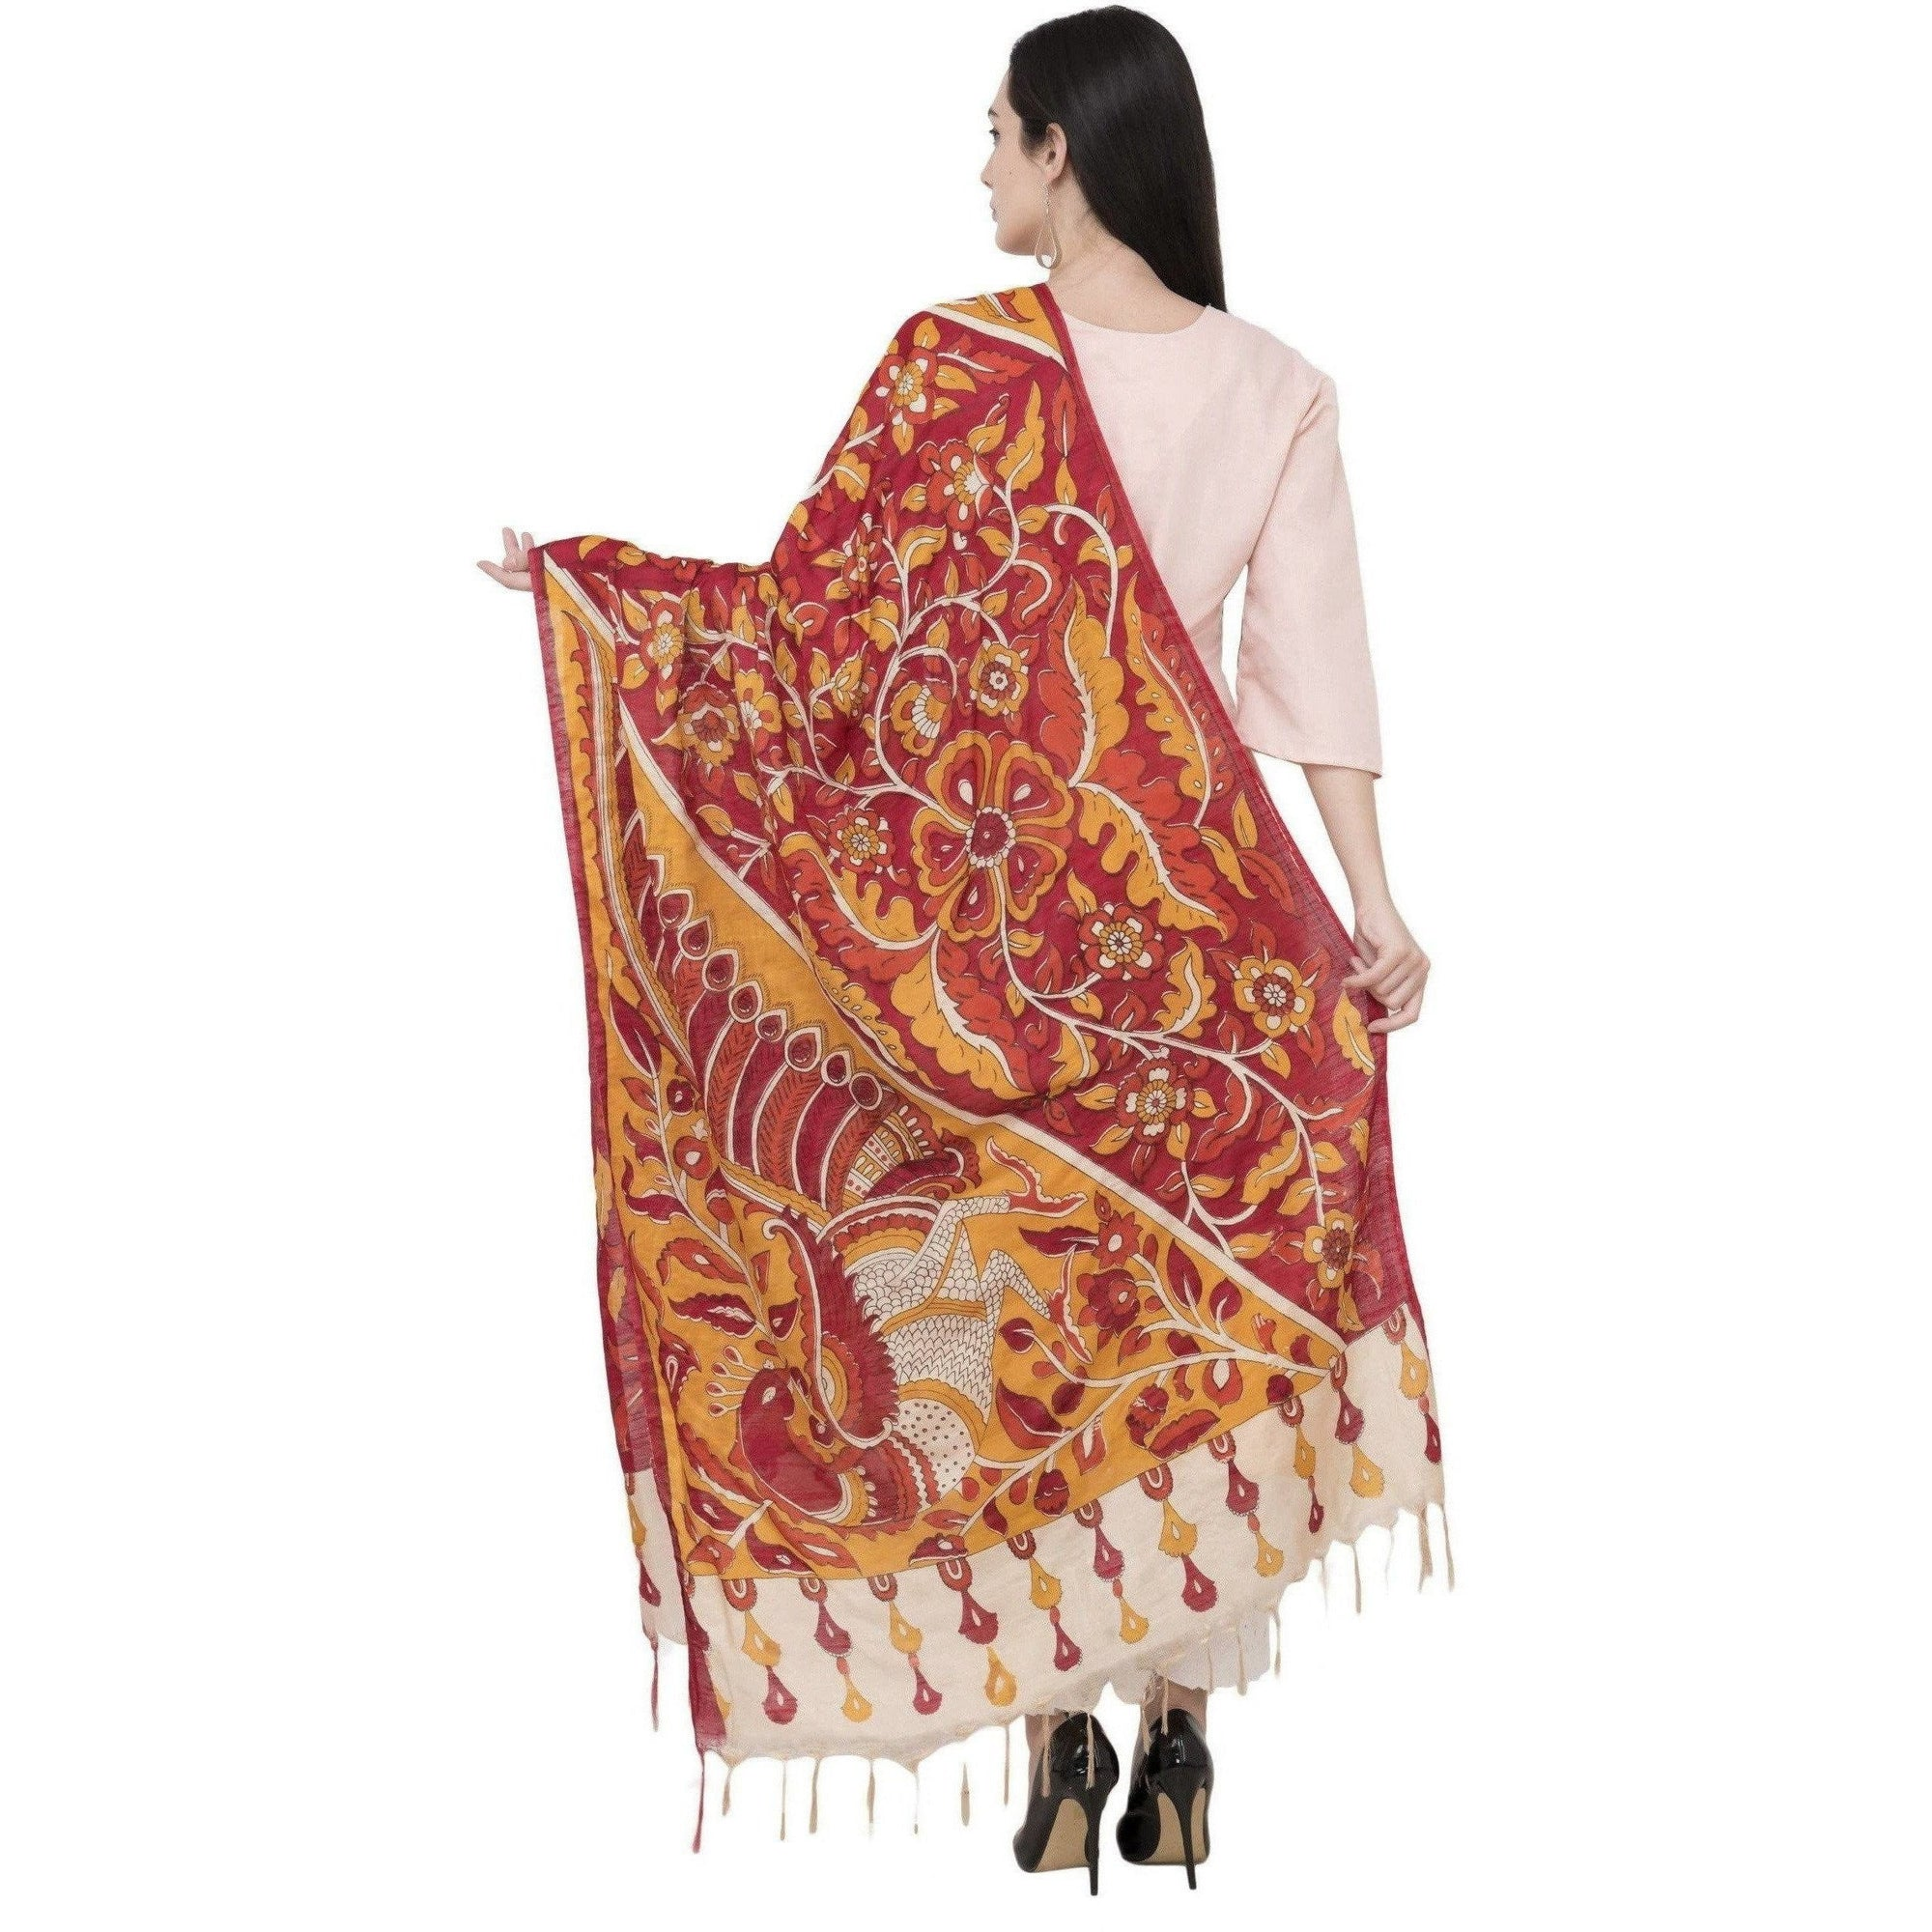 A R Silk Modal Kalamkari Print Fancy Dupatta Color Multi Print Dupatta or Chunni